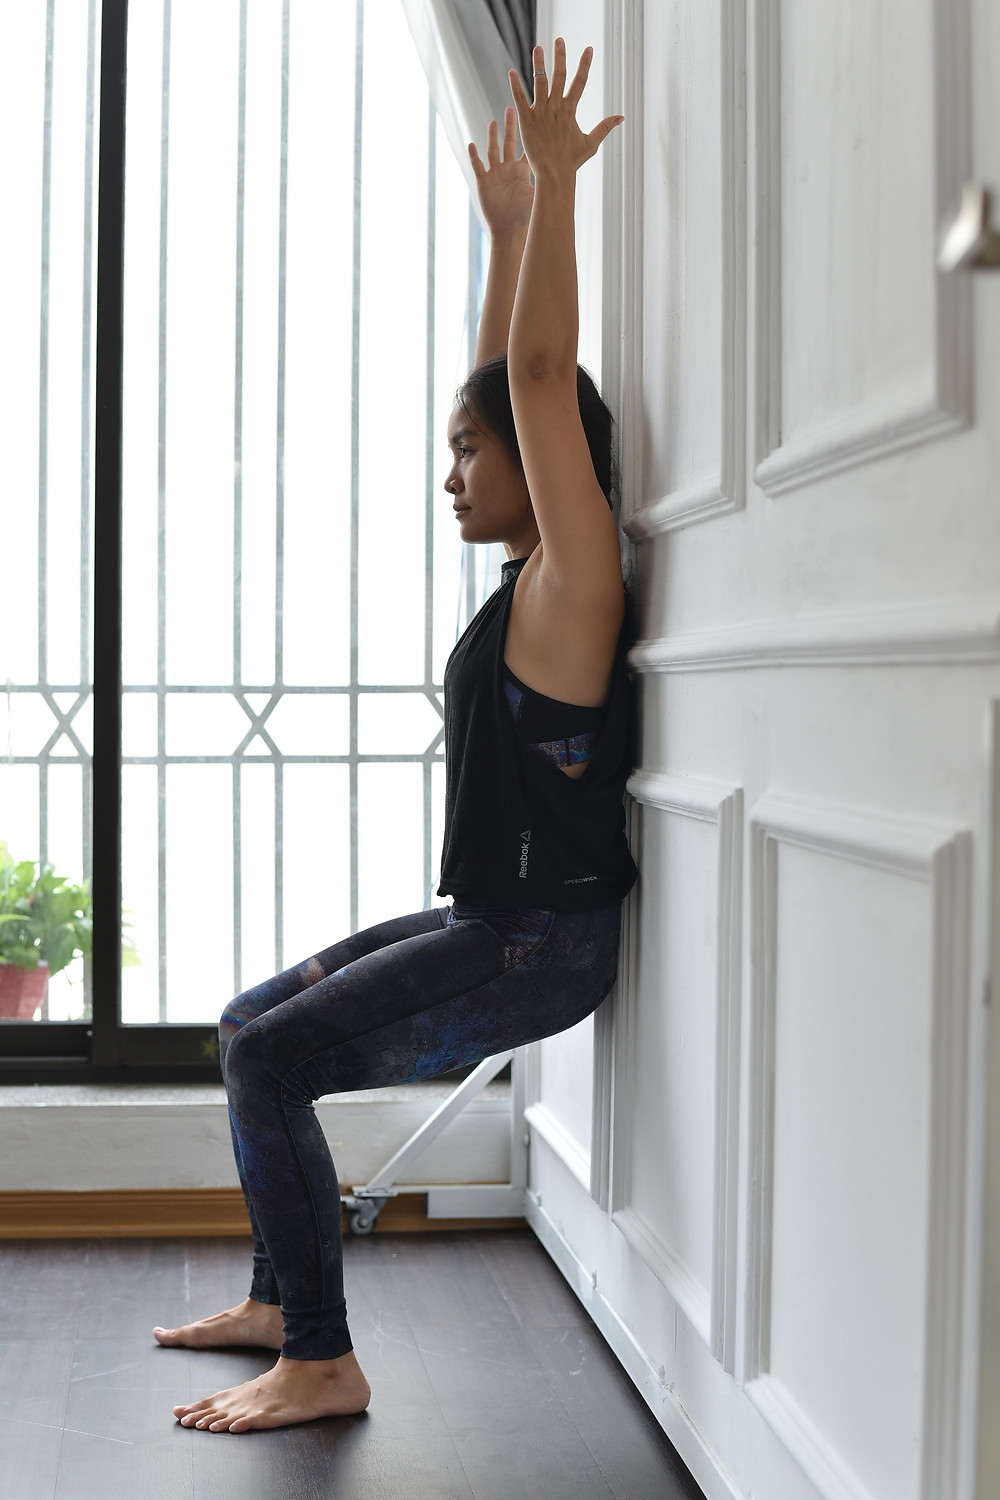 Ha My Yoga teacher in Malmö Sweden is doing chair pose in Yoga with a wall